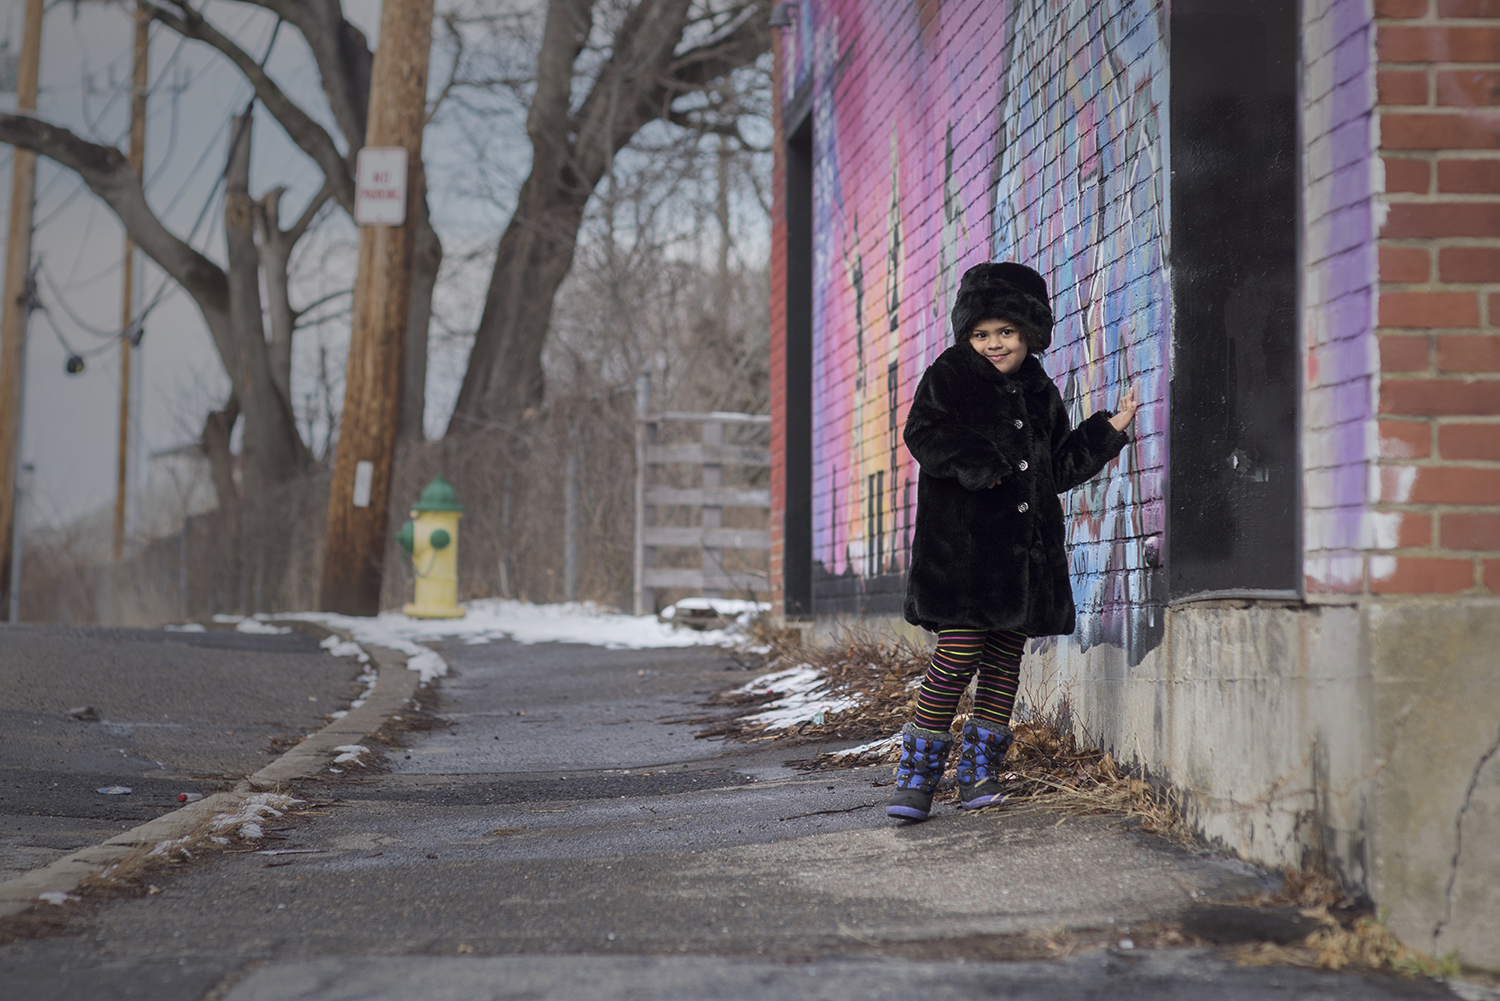 Winter Street Photography! Let it snow!